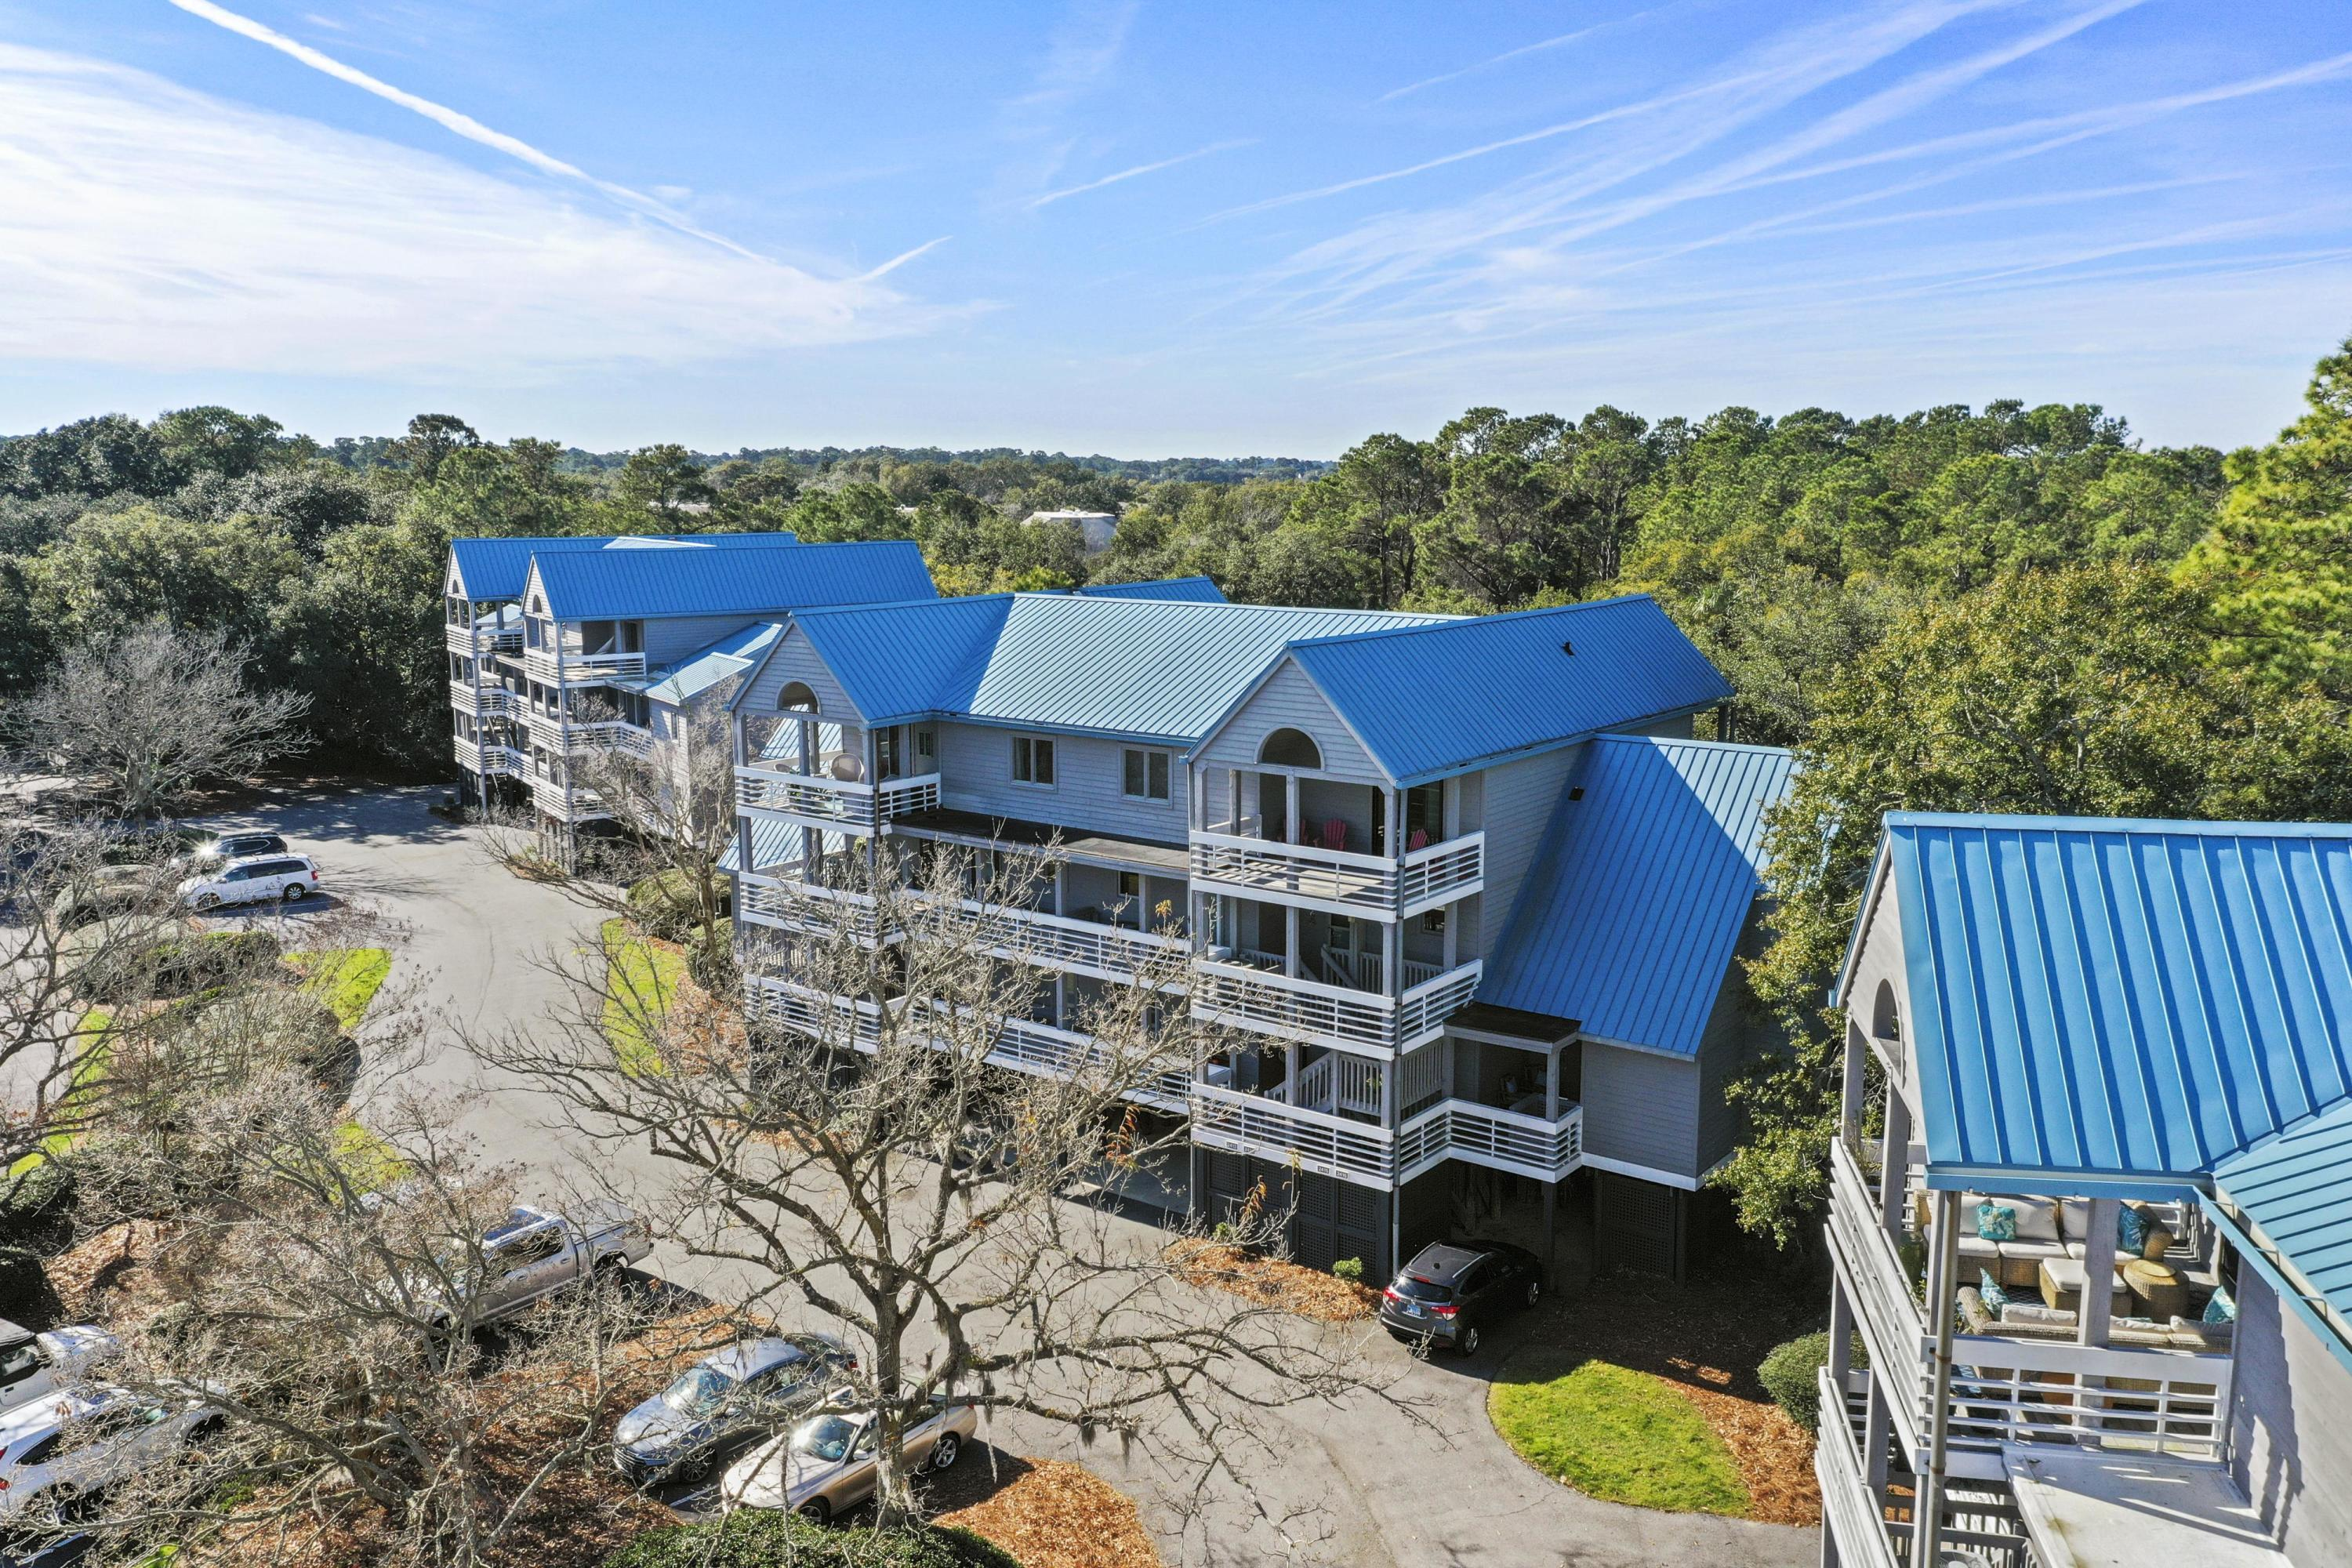 Seabrook Island Condos For Sale - 2416 Racquet Club, Seabrook Island, SC - 16